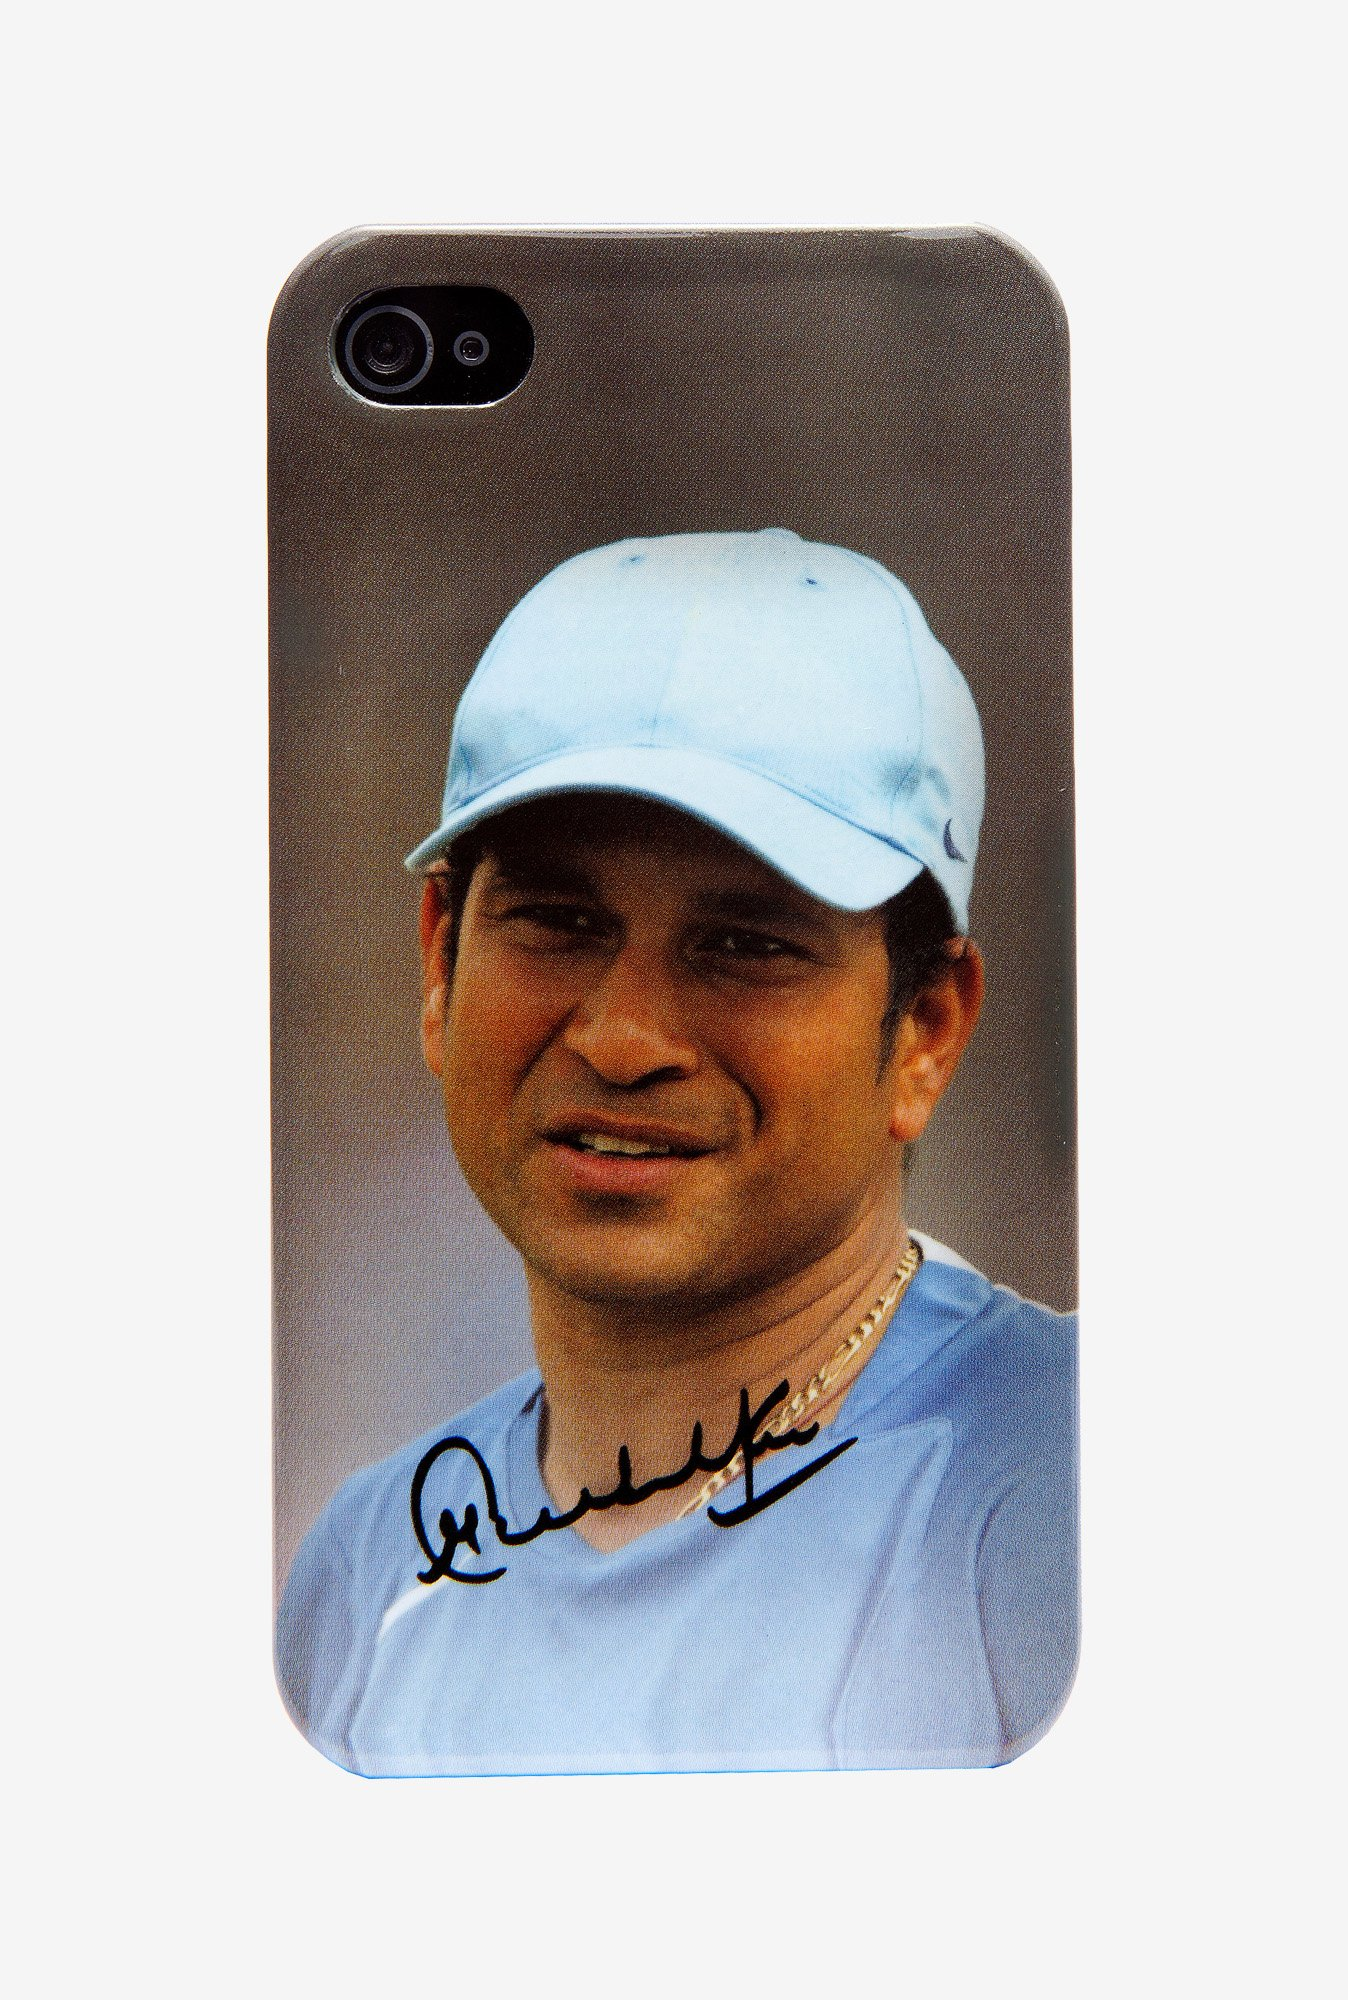 iAccy Sachin Signature Case Multicolor for iPhone 4/4S